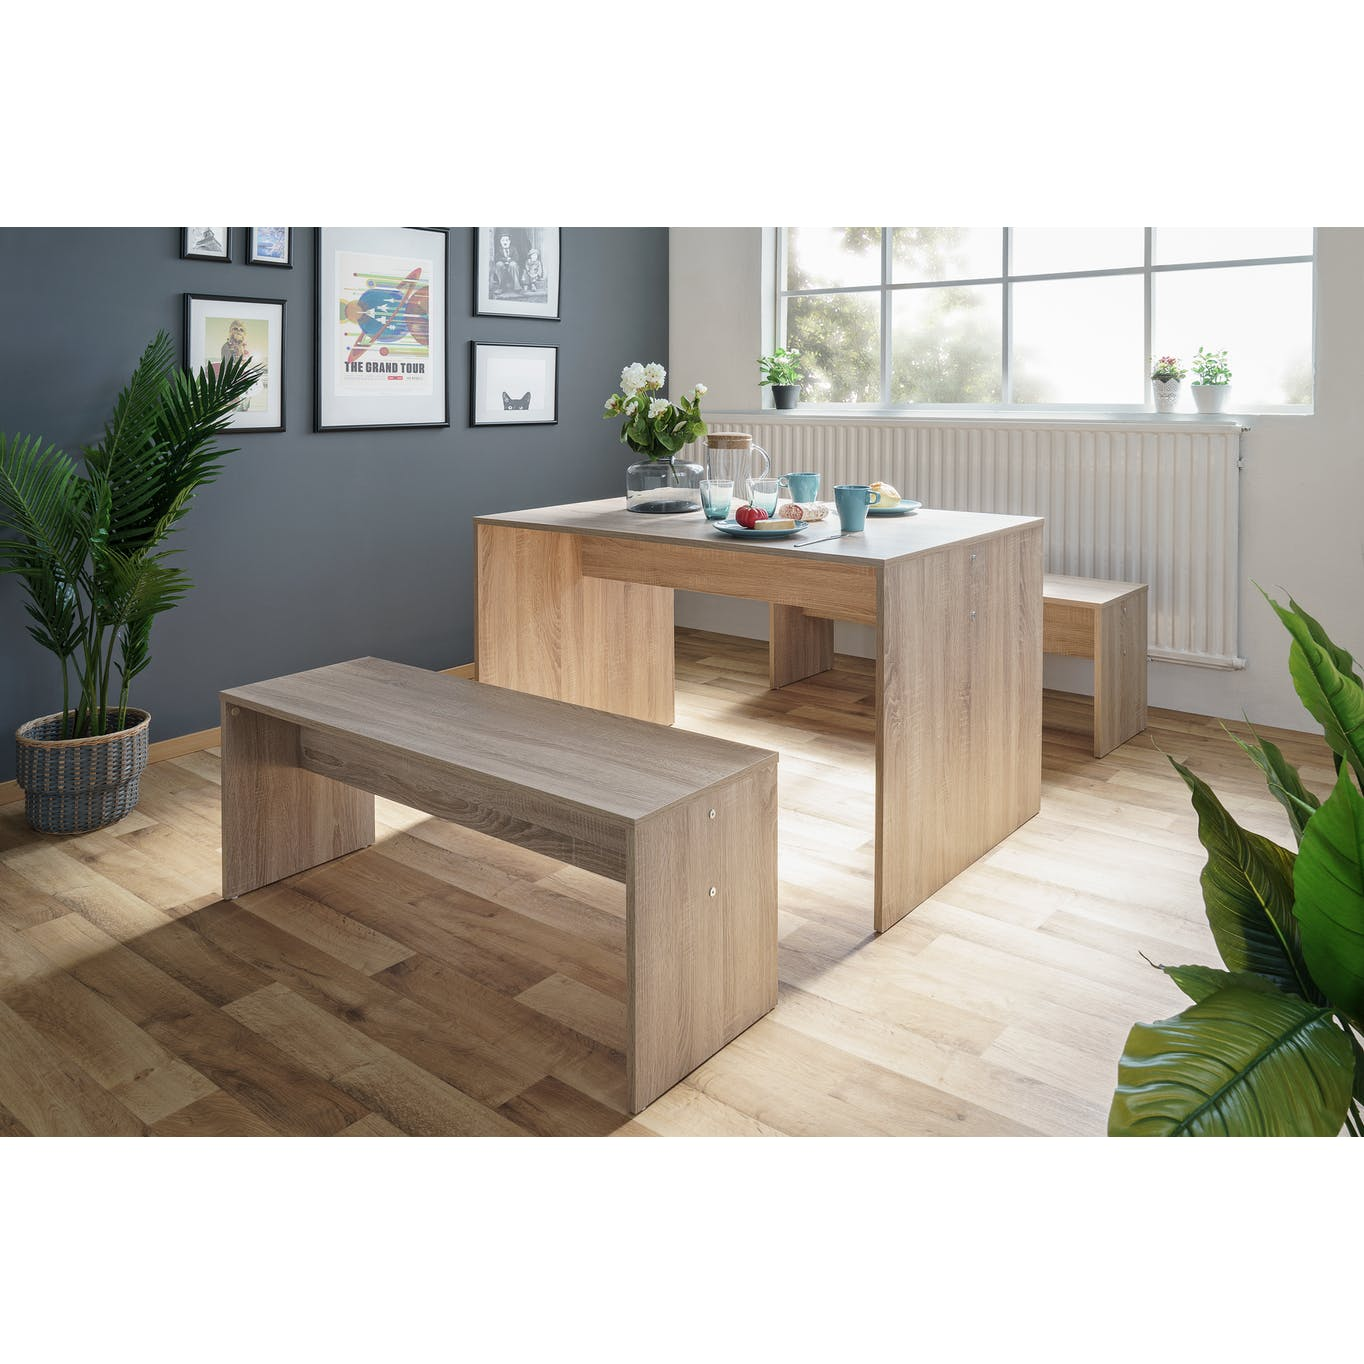 Light wooden dining table with 2 matching benches